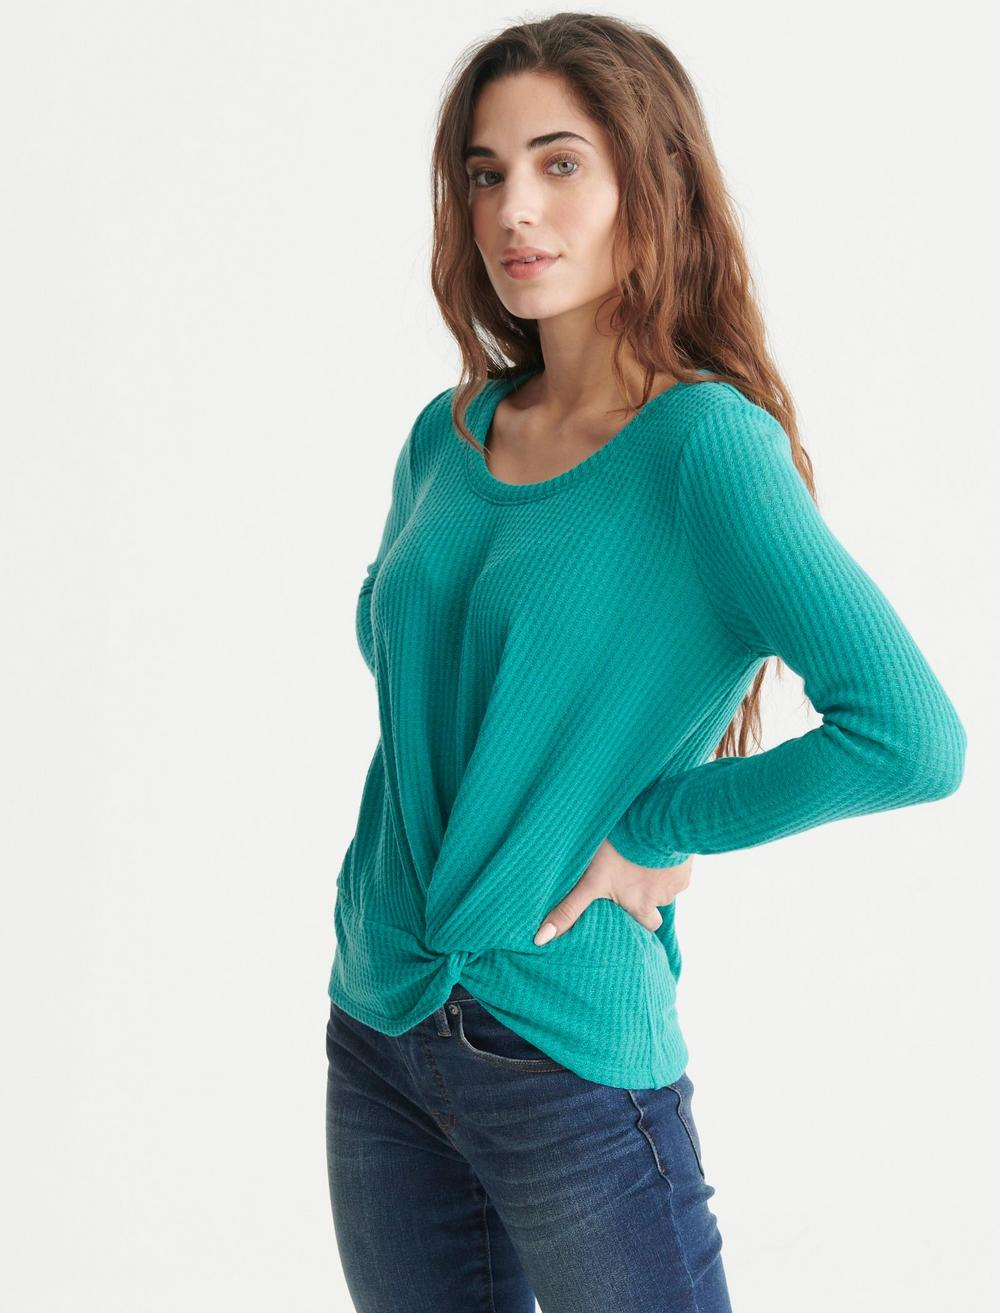 TWIST FRONT THERMAL TOP, image 3